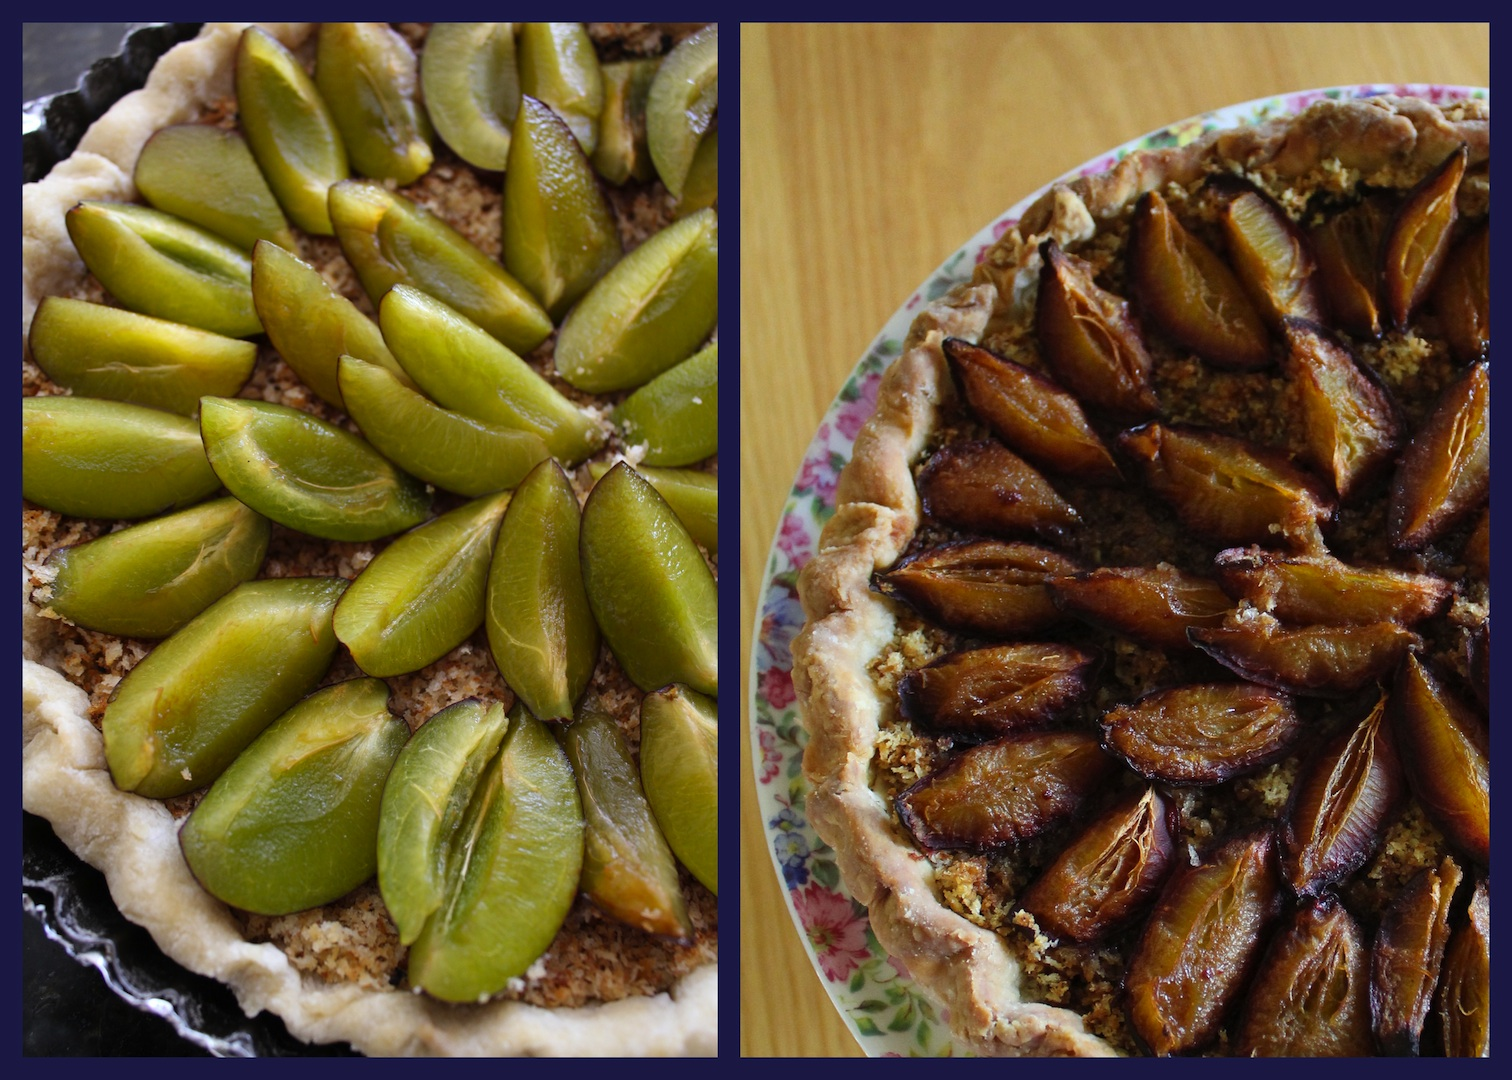 PLUM TART BEFORE AND AFTER